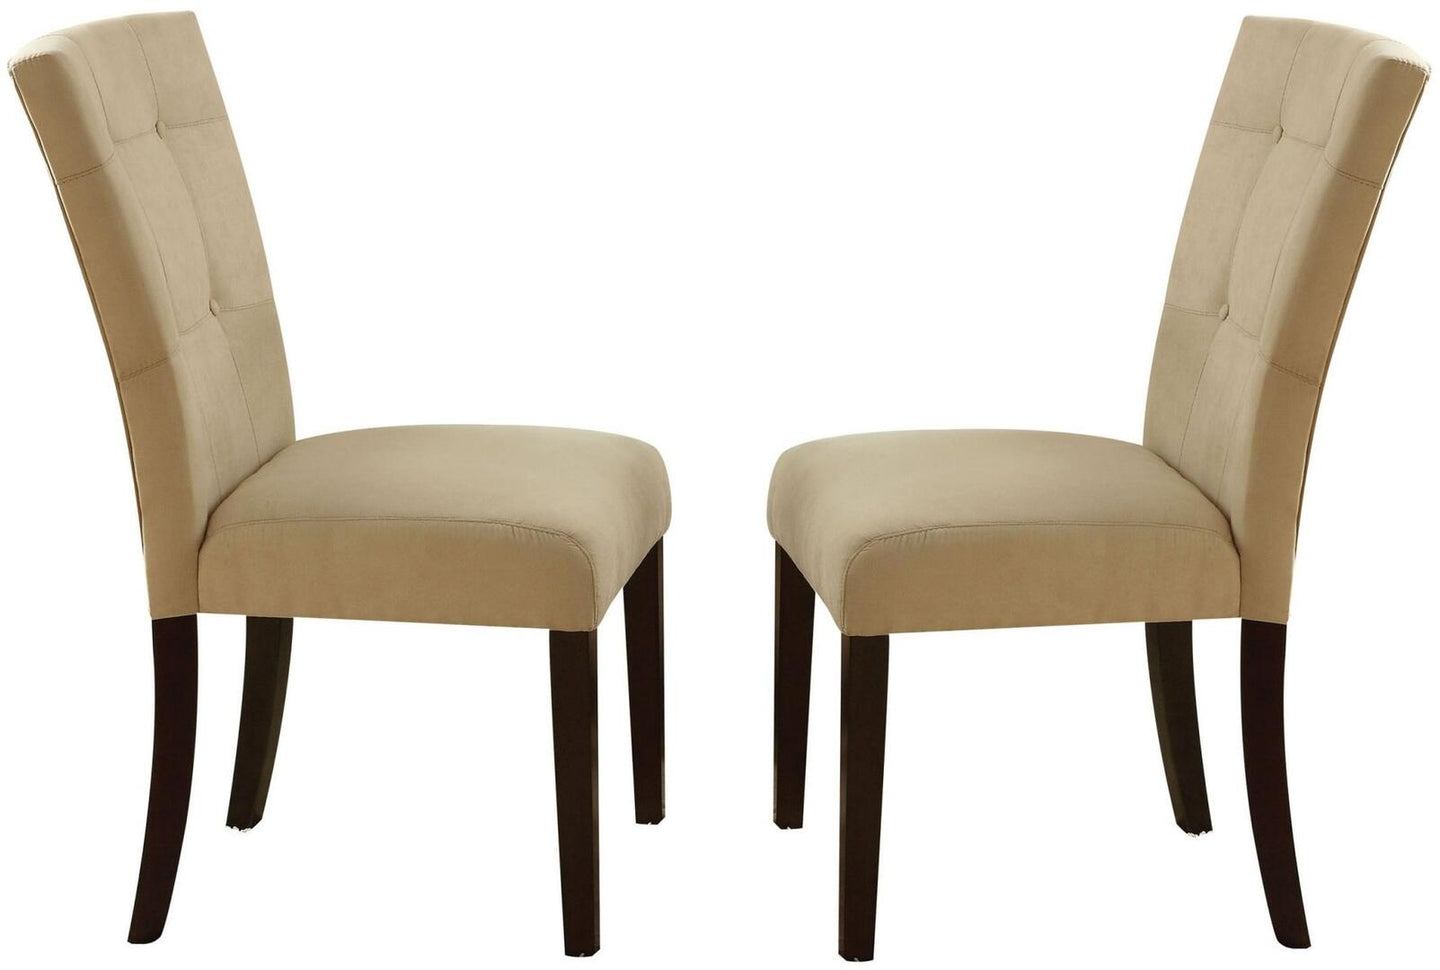 Acme Baldwin Beige Microfiber And Wood Finish 2 Piece Dining Chair